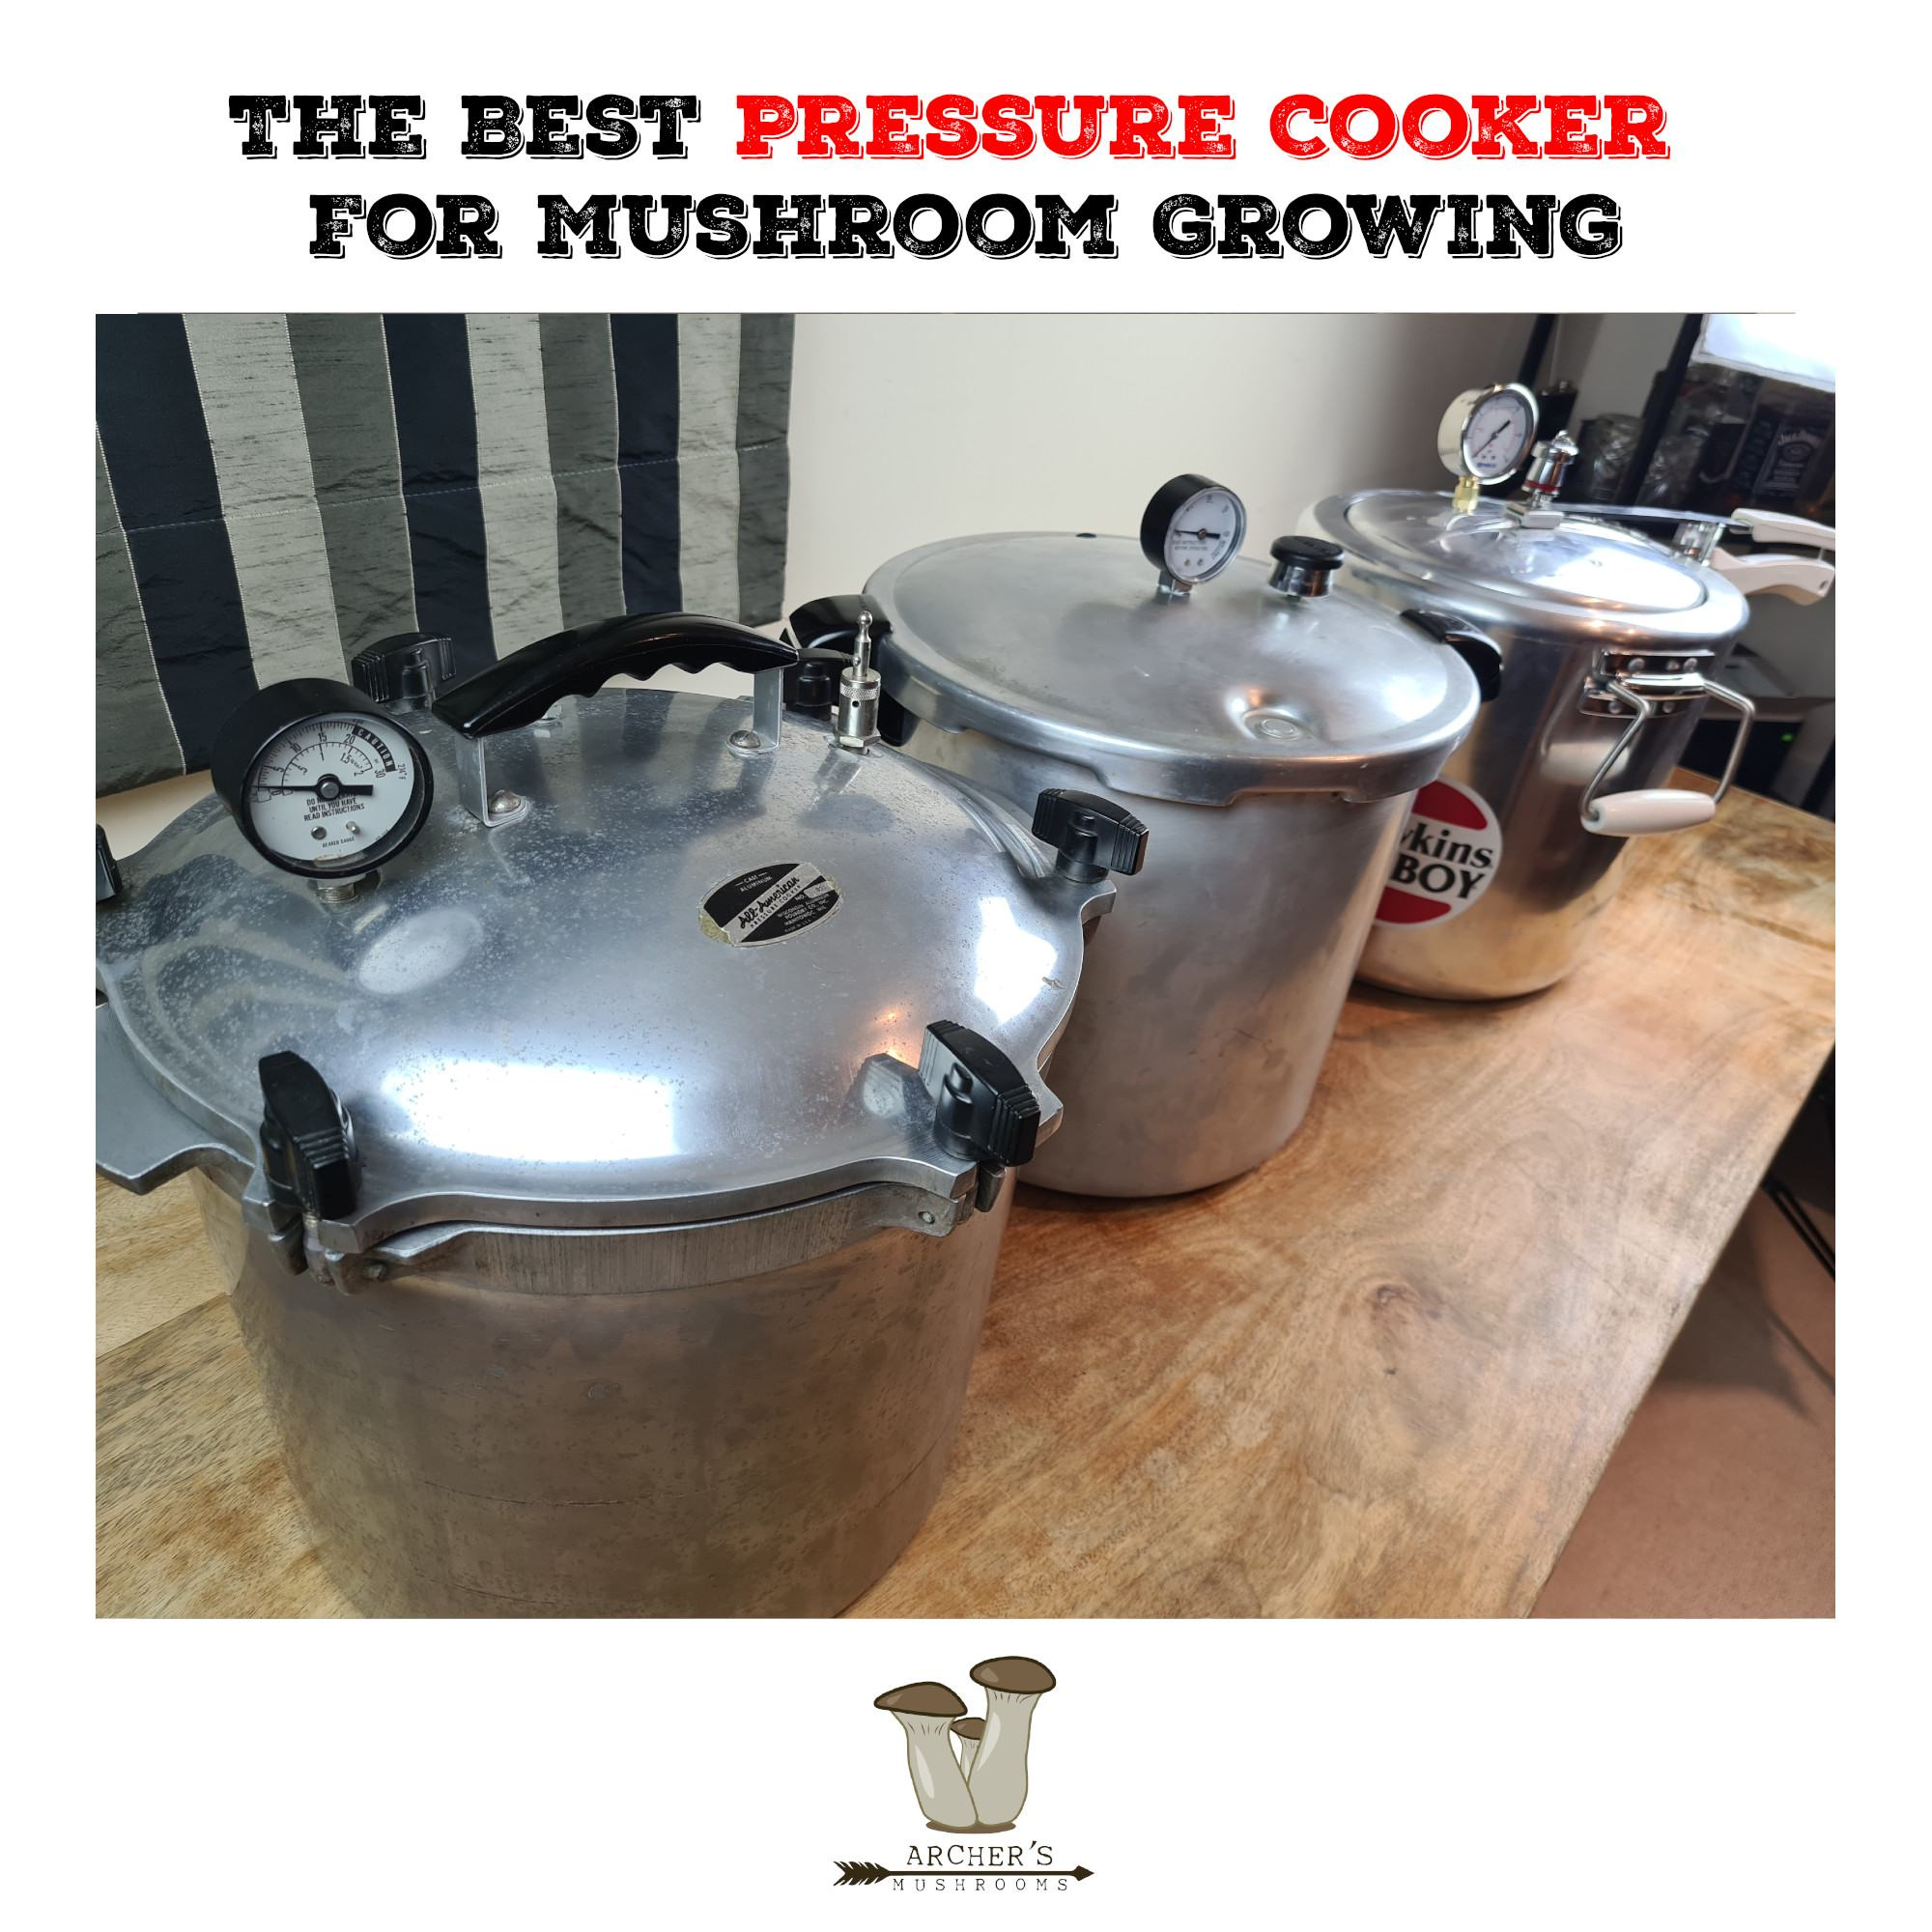 The Best Mushroom Growing Pressure Cooker | The Best Pressure Cookers FOr Mushroom Growing | Top 4 Best Pressure Cookers For Mushroom Growing | Mushroom Growing | Mushroom Blogs | Mushroom Growing | Mushroom Tips | Mushroom Business